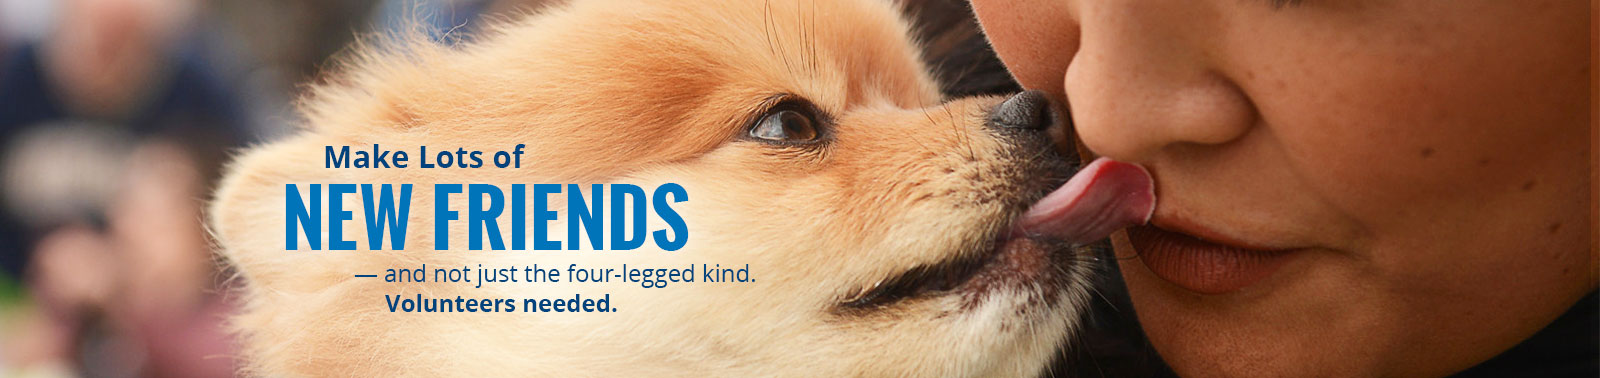 Make new friends - and not just the four-legged kind. Volunteers needed. Puppy kissing a volunteer.